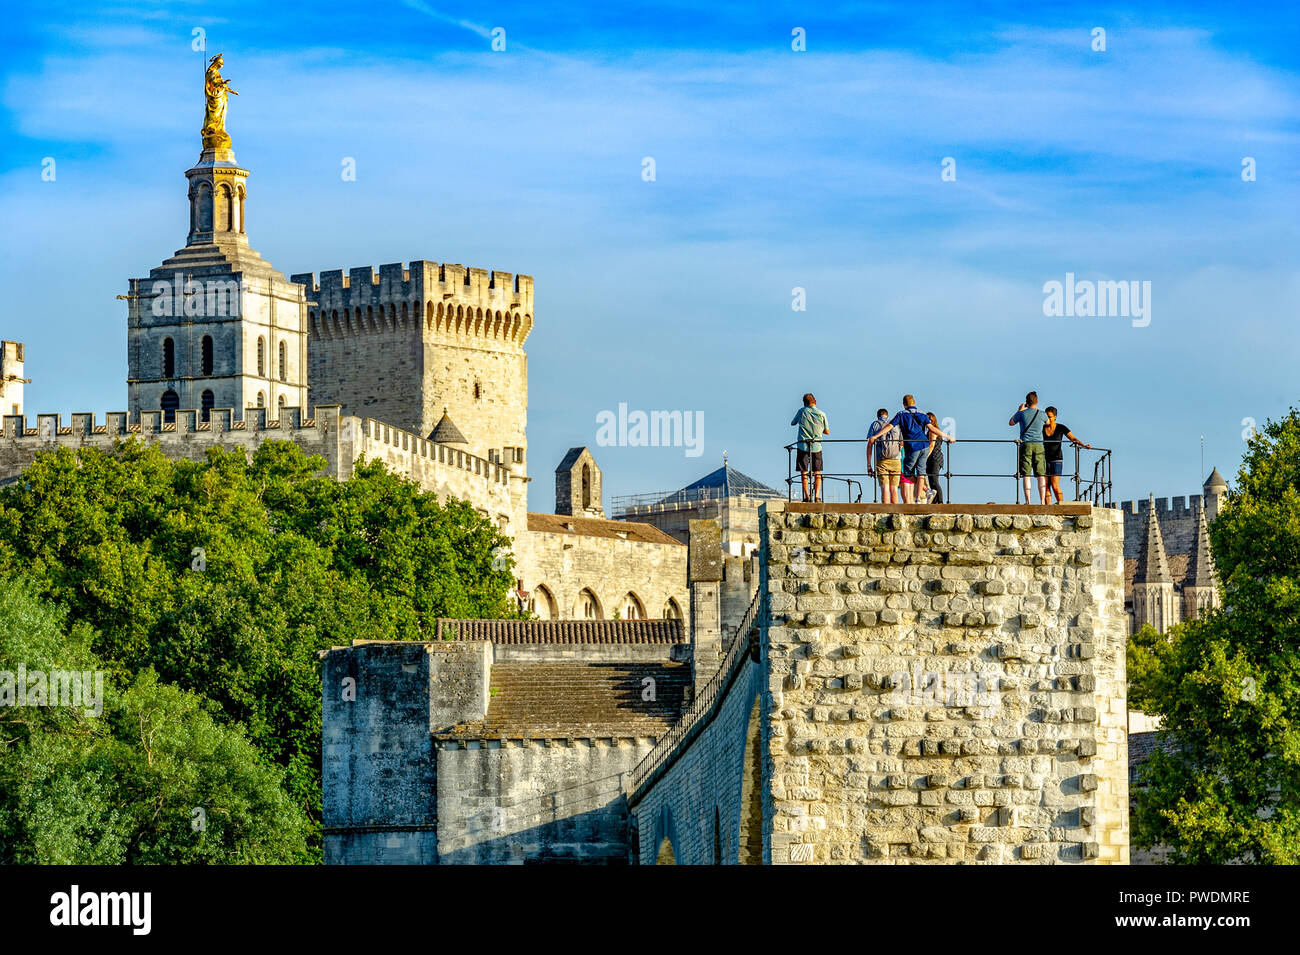 France. Vaucluse (84). Avignon. Pont Saint-Bénézet, commonly called Pont d'Avignon, built from 1177 to 1185 on the Rhone. - Stock Image